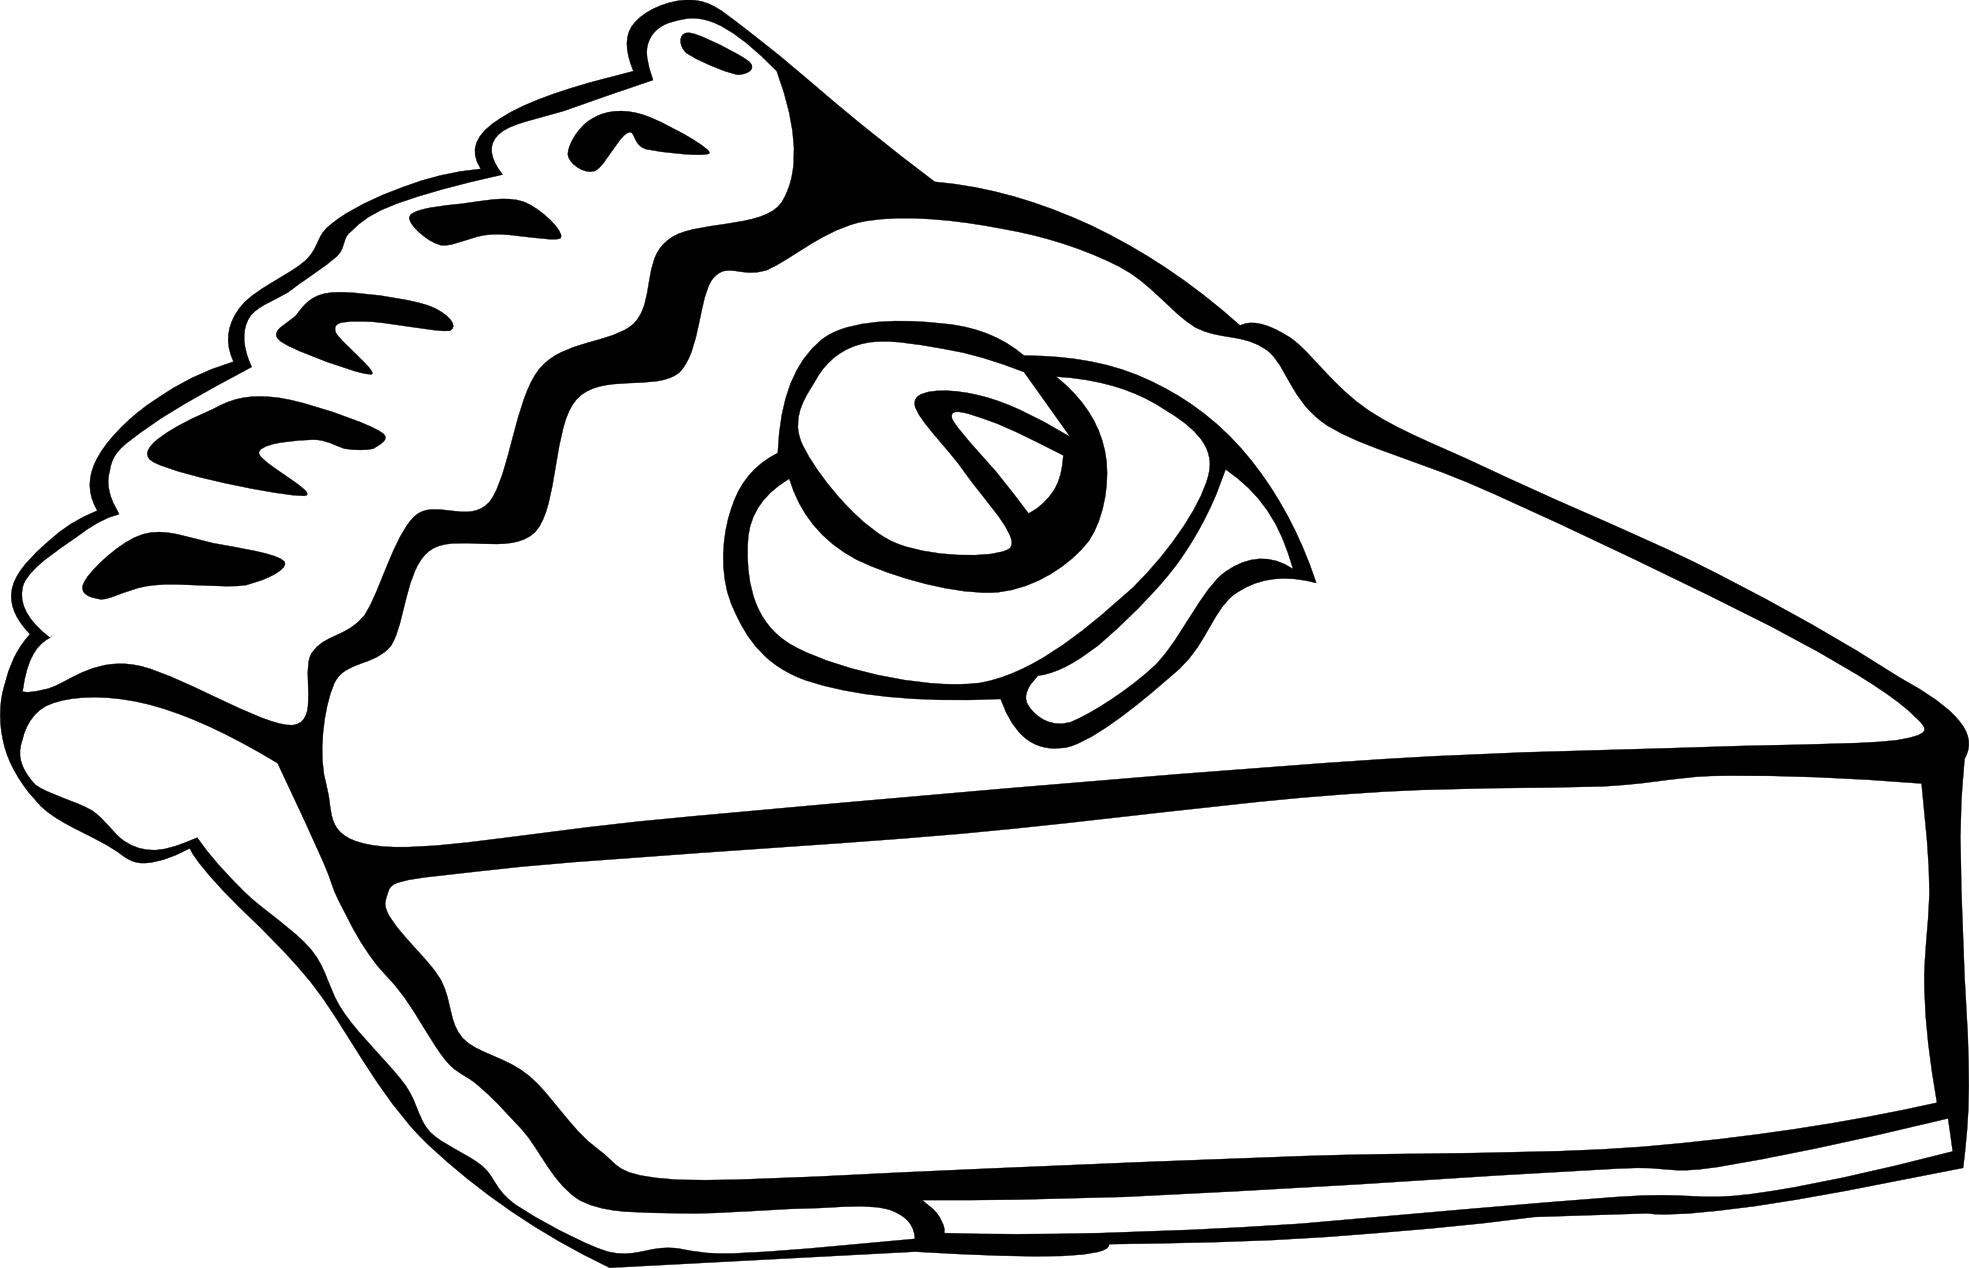 Line Drawing Food : Food clipart black and white panda free